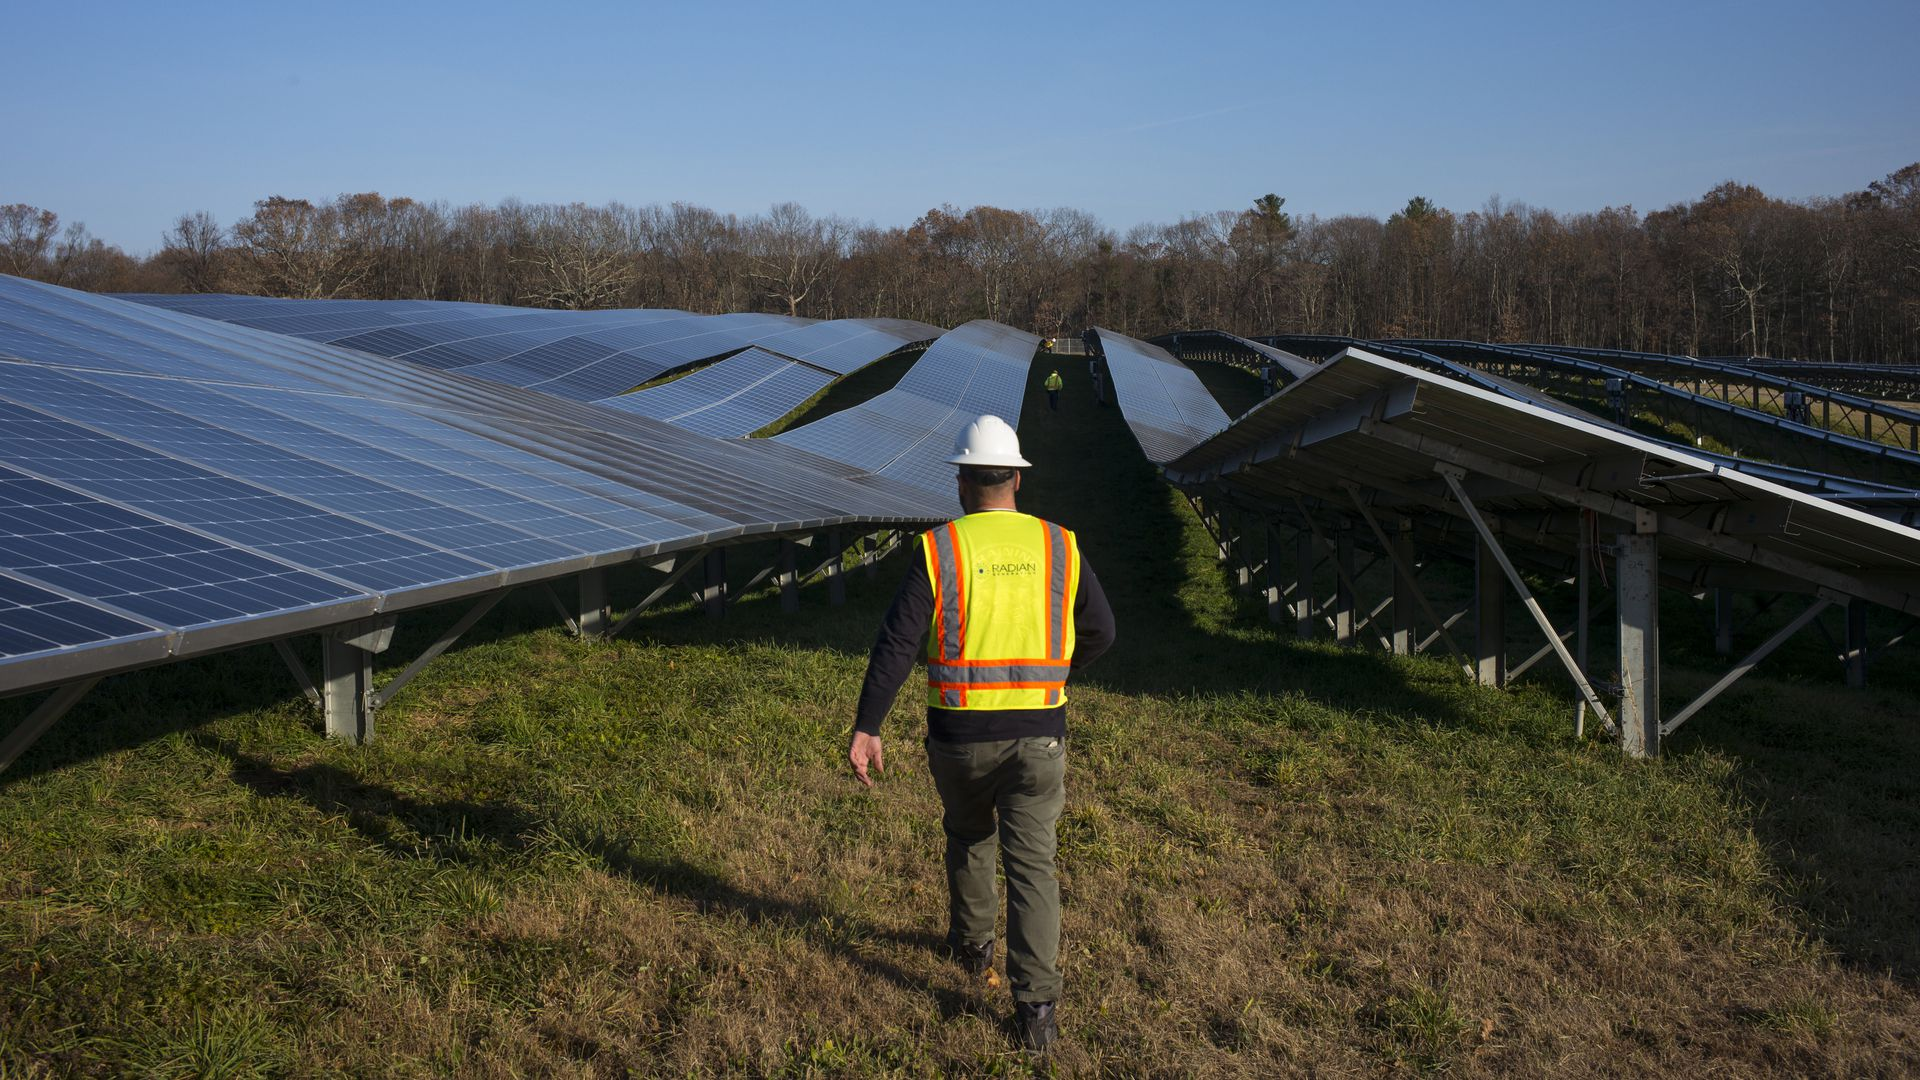 A man walks through a field with solar panels